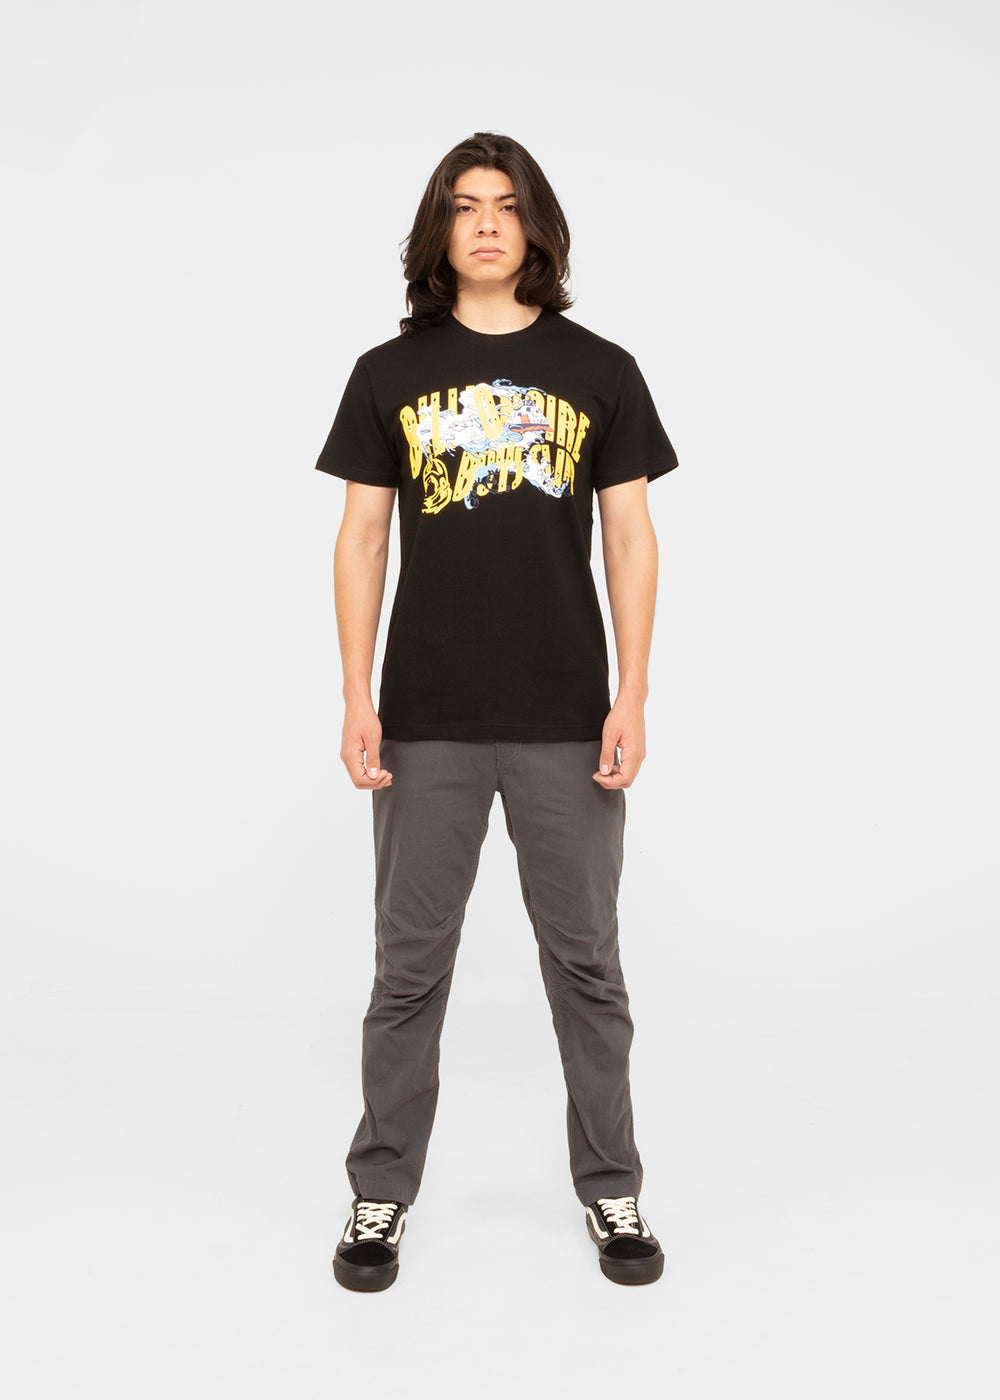 billionaire-boys-club-recovery-ss-tee-891-7205-blk-blk-4